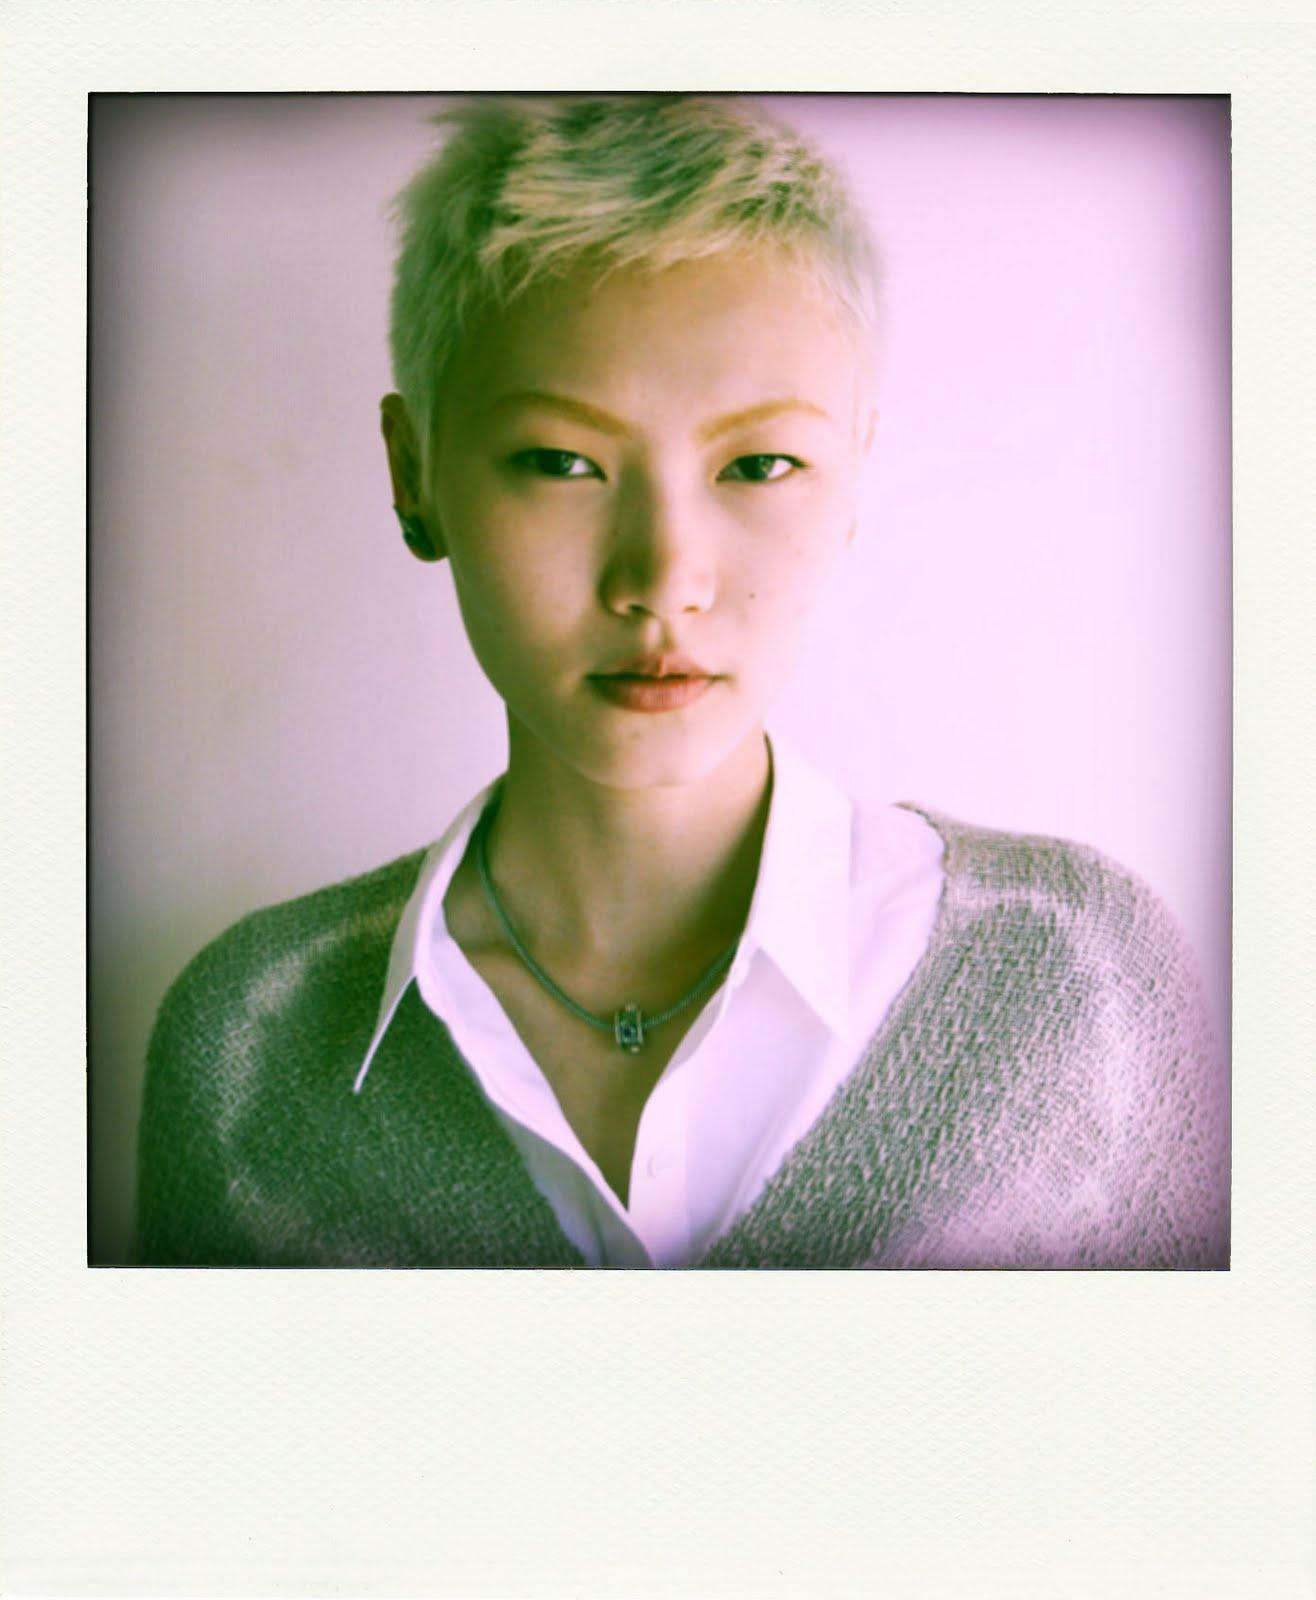 Gwen Model http://asianmodelsblog.blogspot.com/2010/06/gwen-lu-polaroids-from-major-models.html